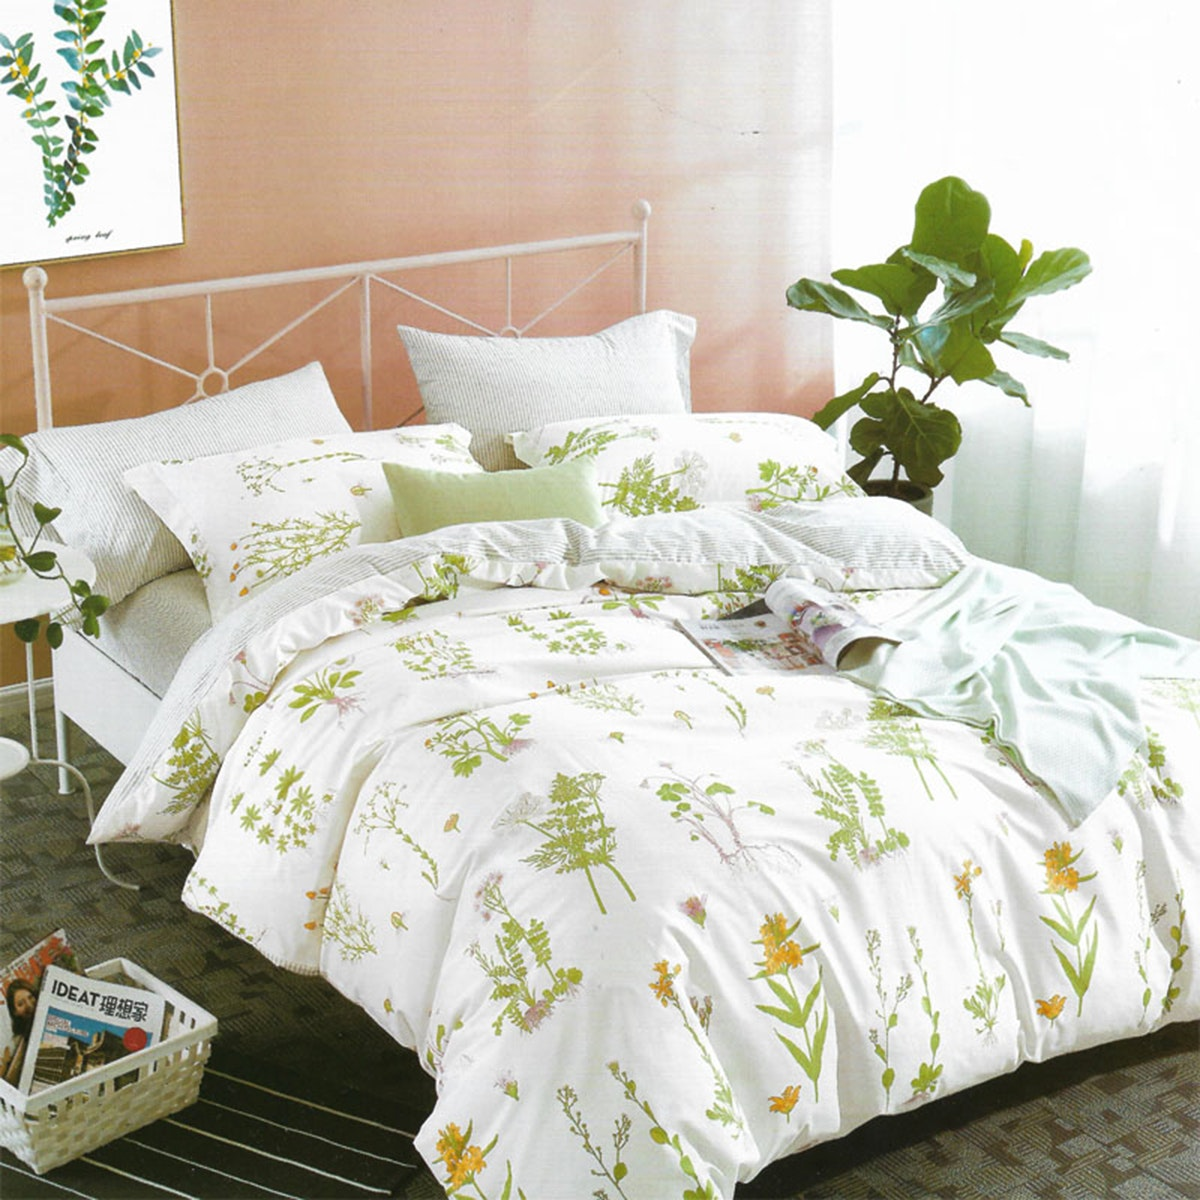 Sleep Buddy Set Sprei White Garden Cotton Sateen 160x200x30